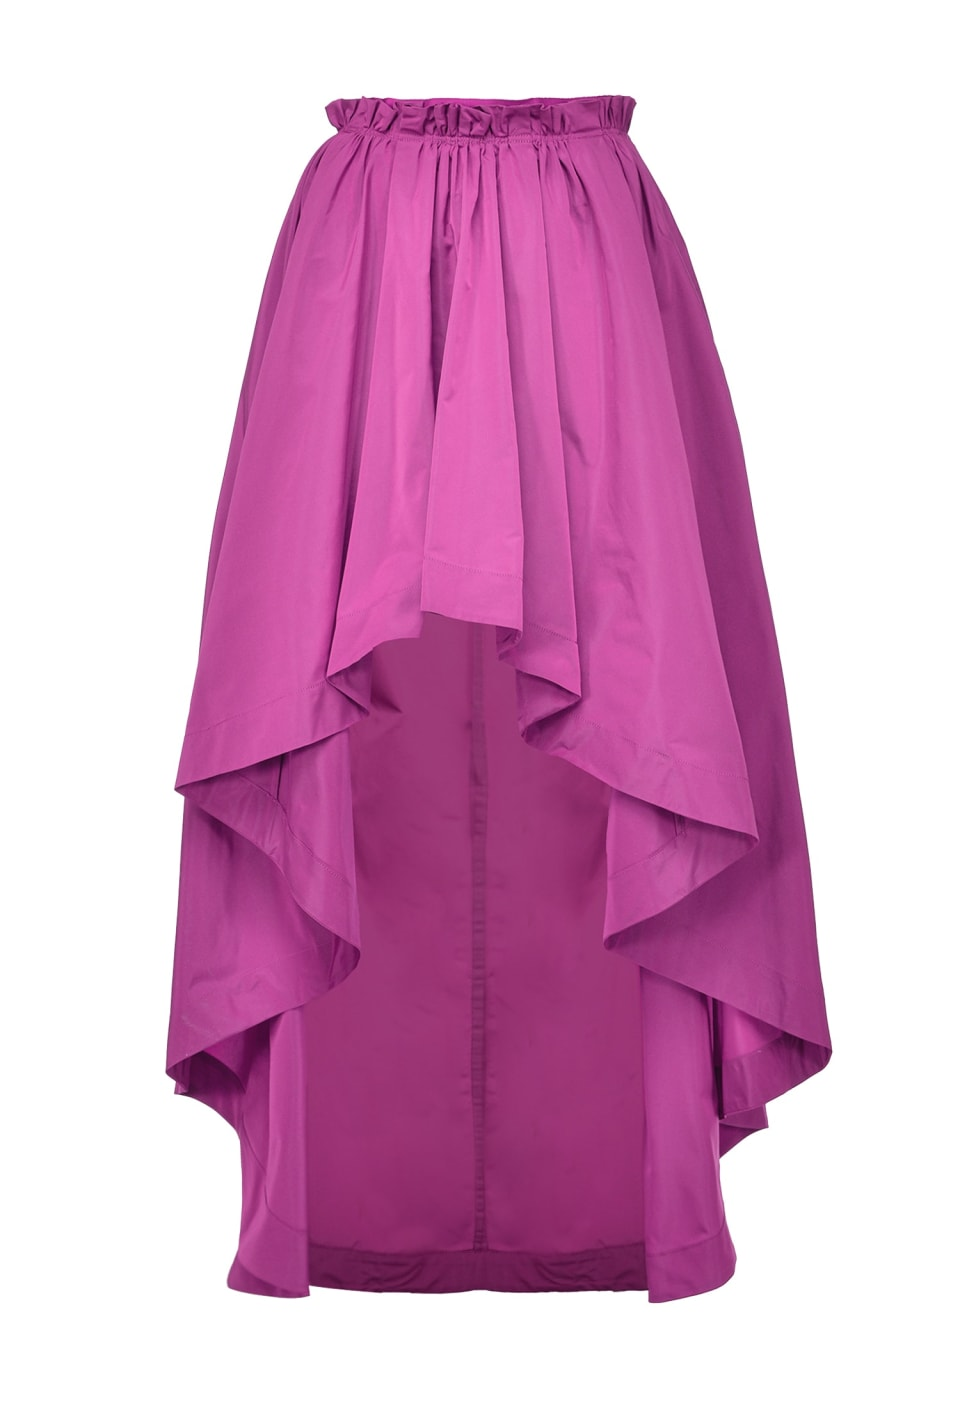 Long skirt in taffeta with gathering